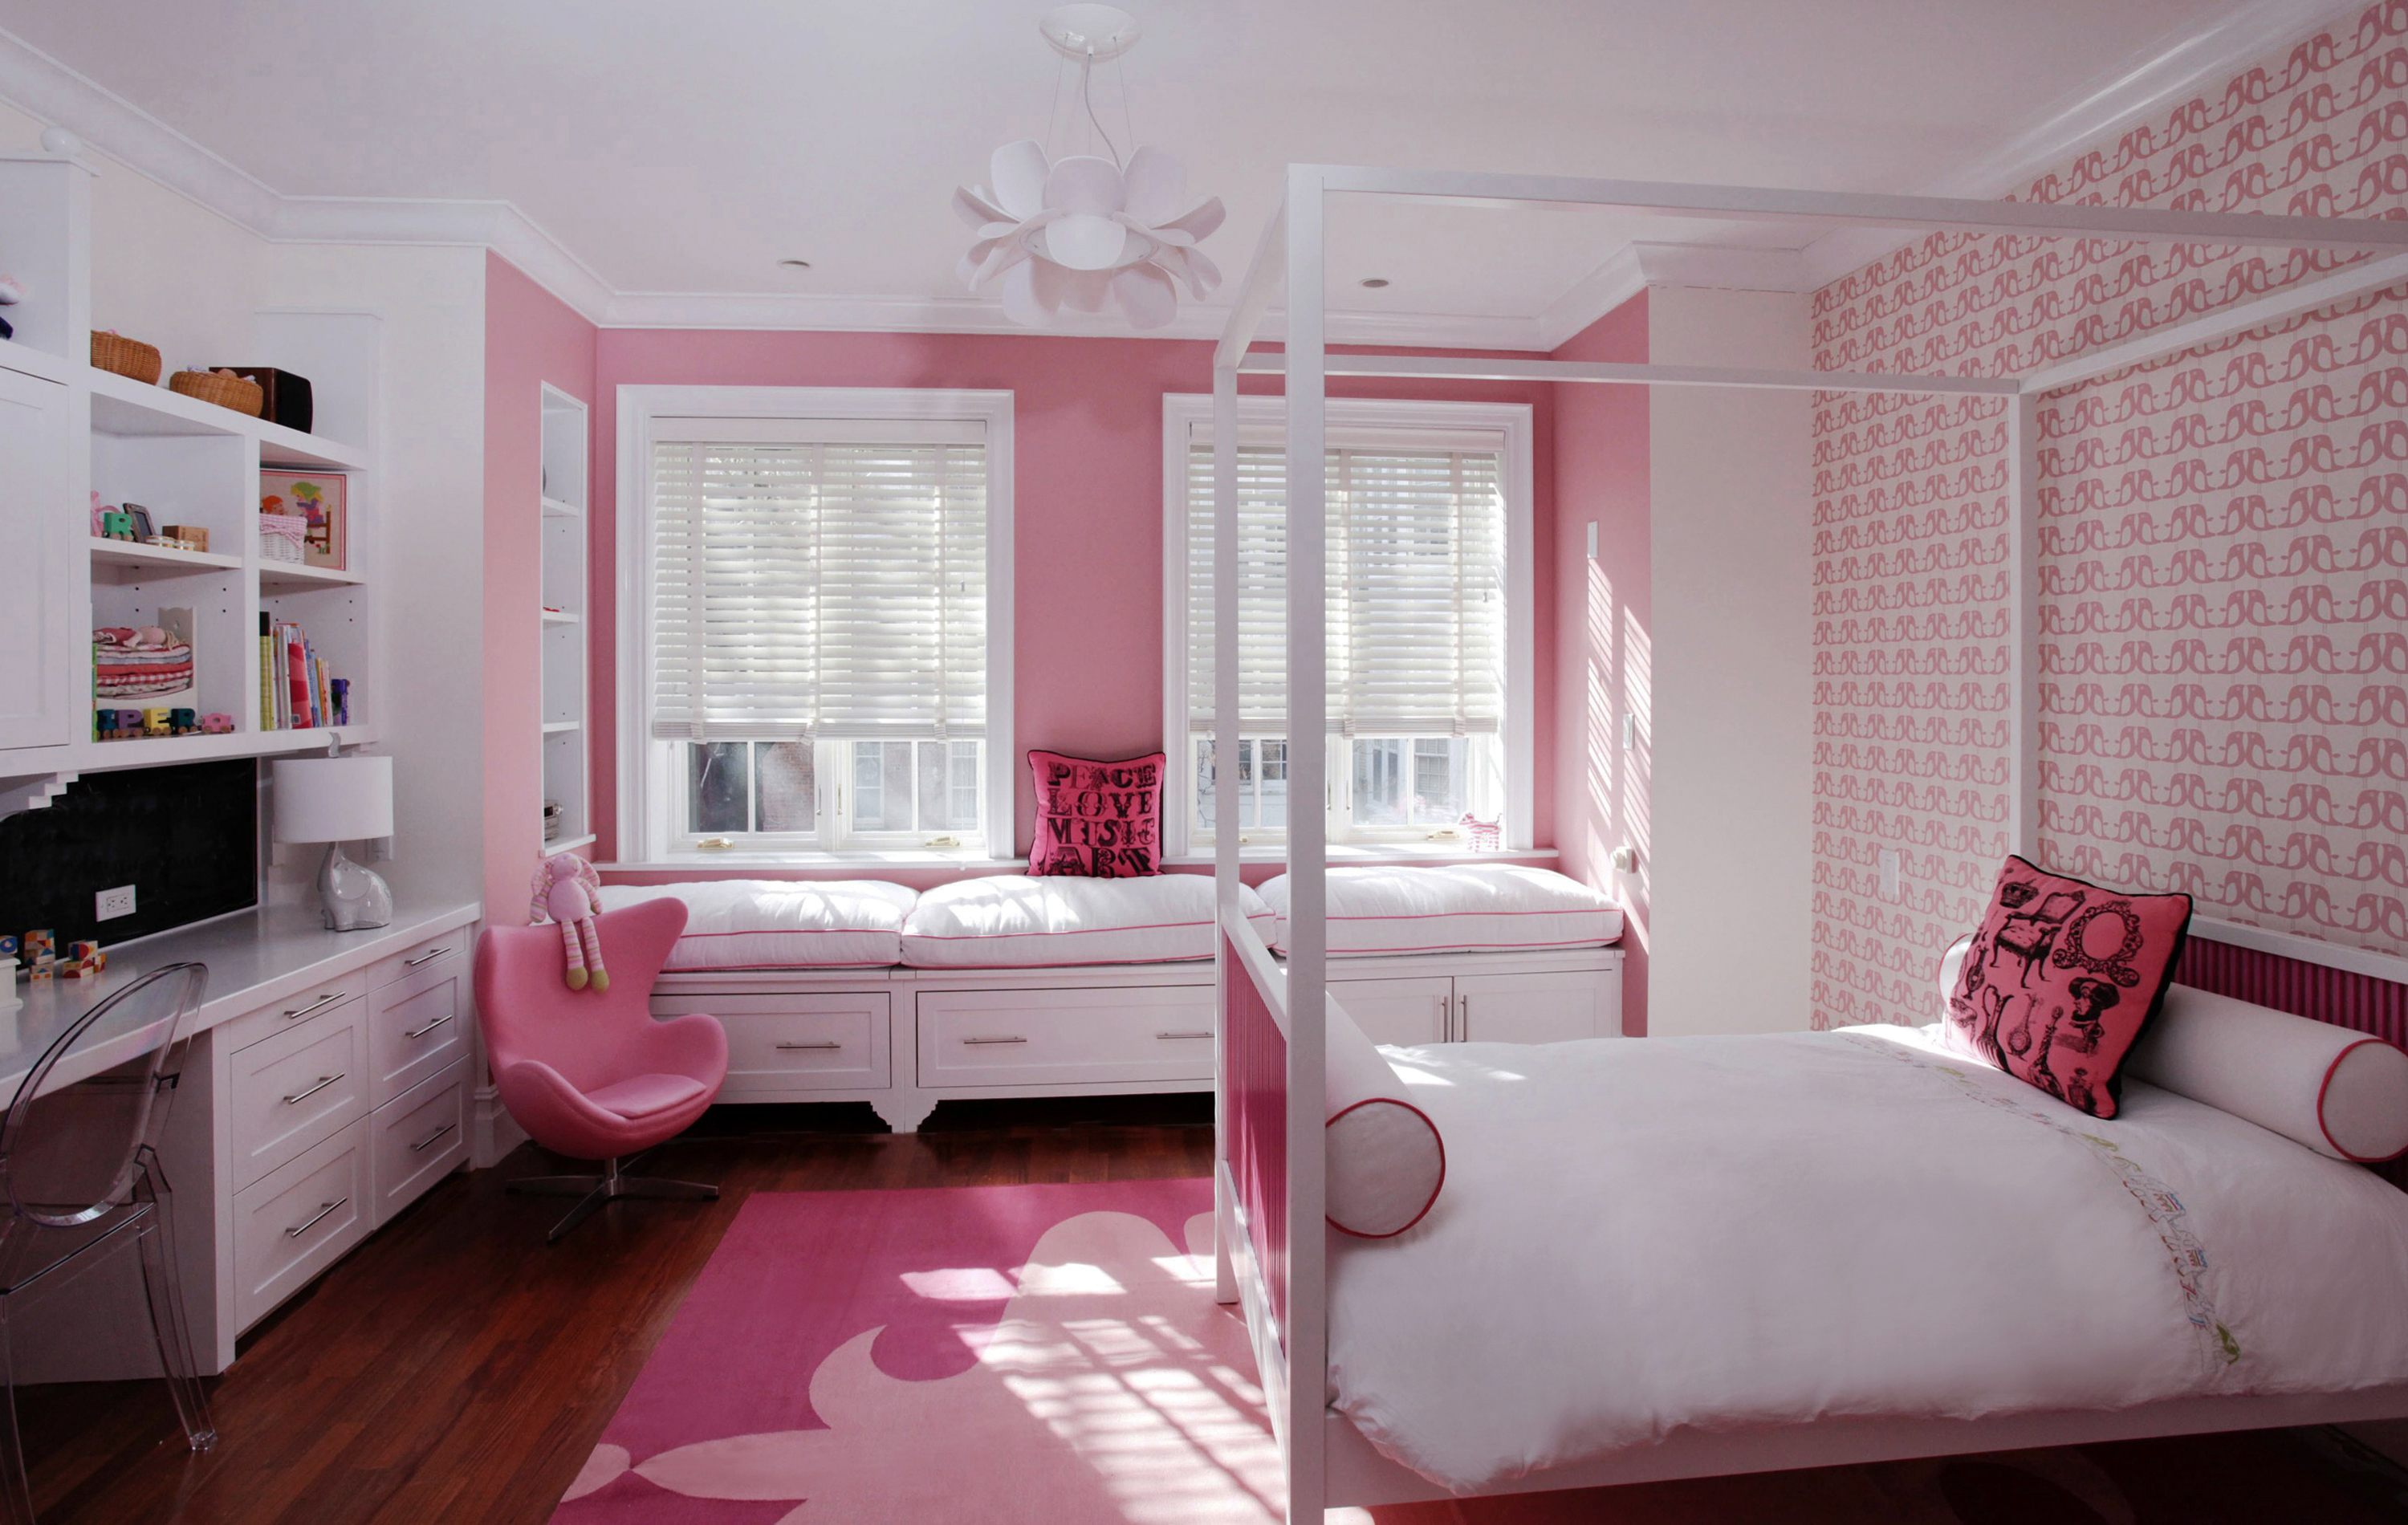 Interior design bedroom for teenage girls pink type for Interior design bedroom pink